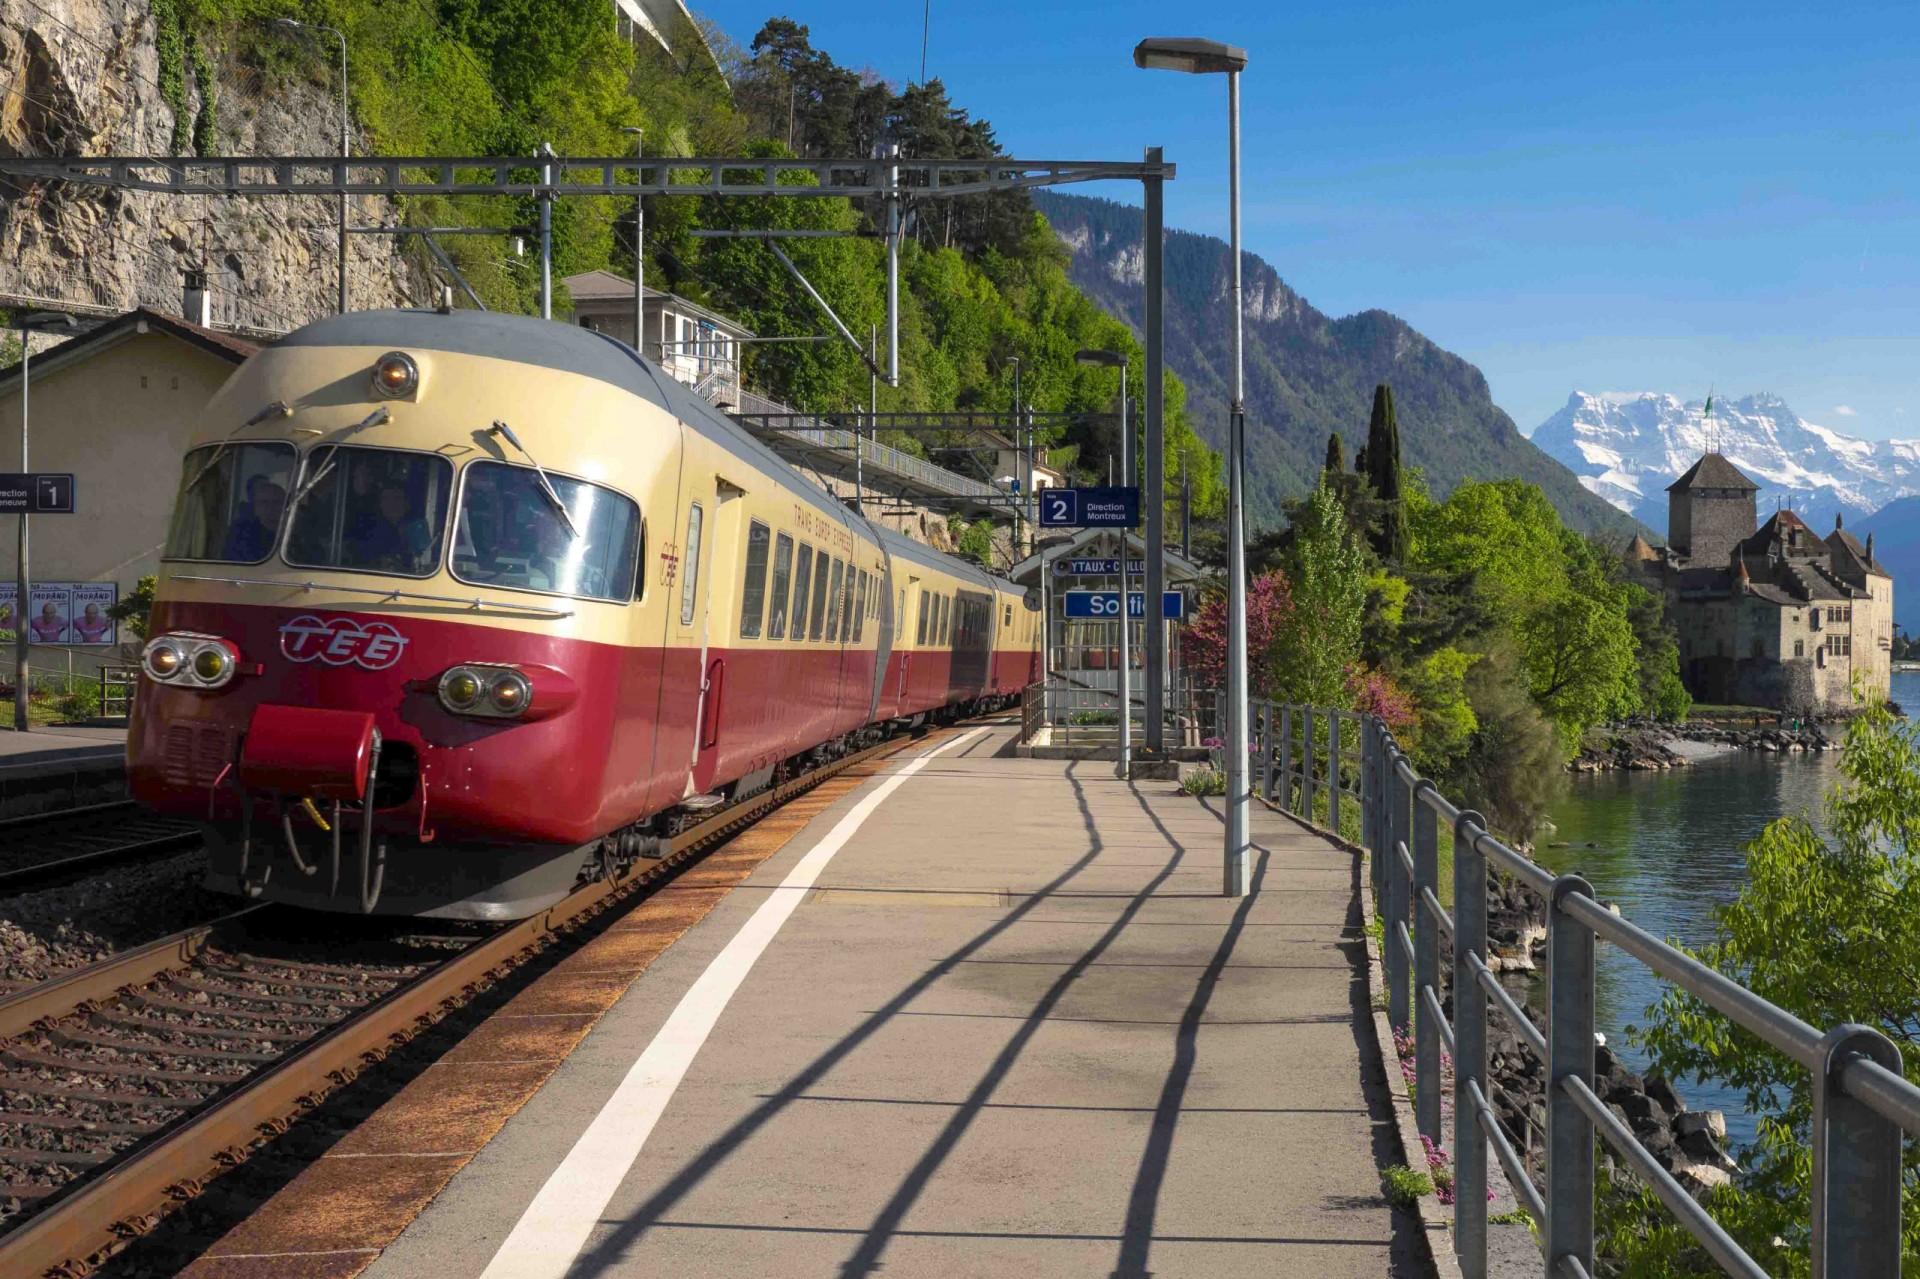 A preserved RAe TEE II trainset passing through Veytaux-Chillon station, on the Cisalpin's route (but not a stop), with Chillon Castle in the background MARKUS EIGENHEER (WIKIPEDIA)